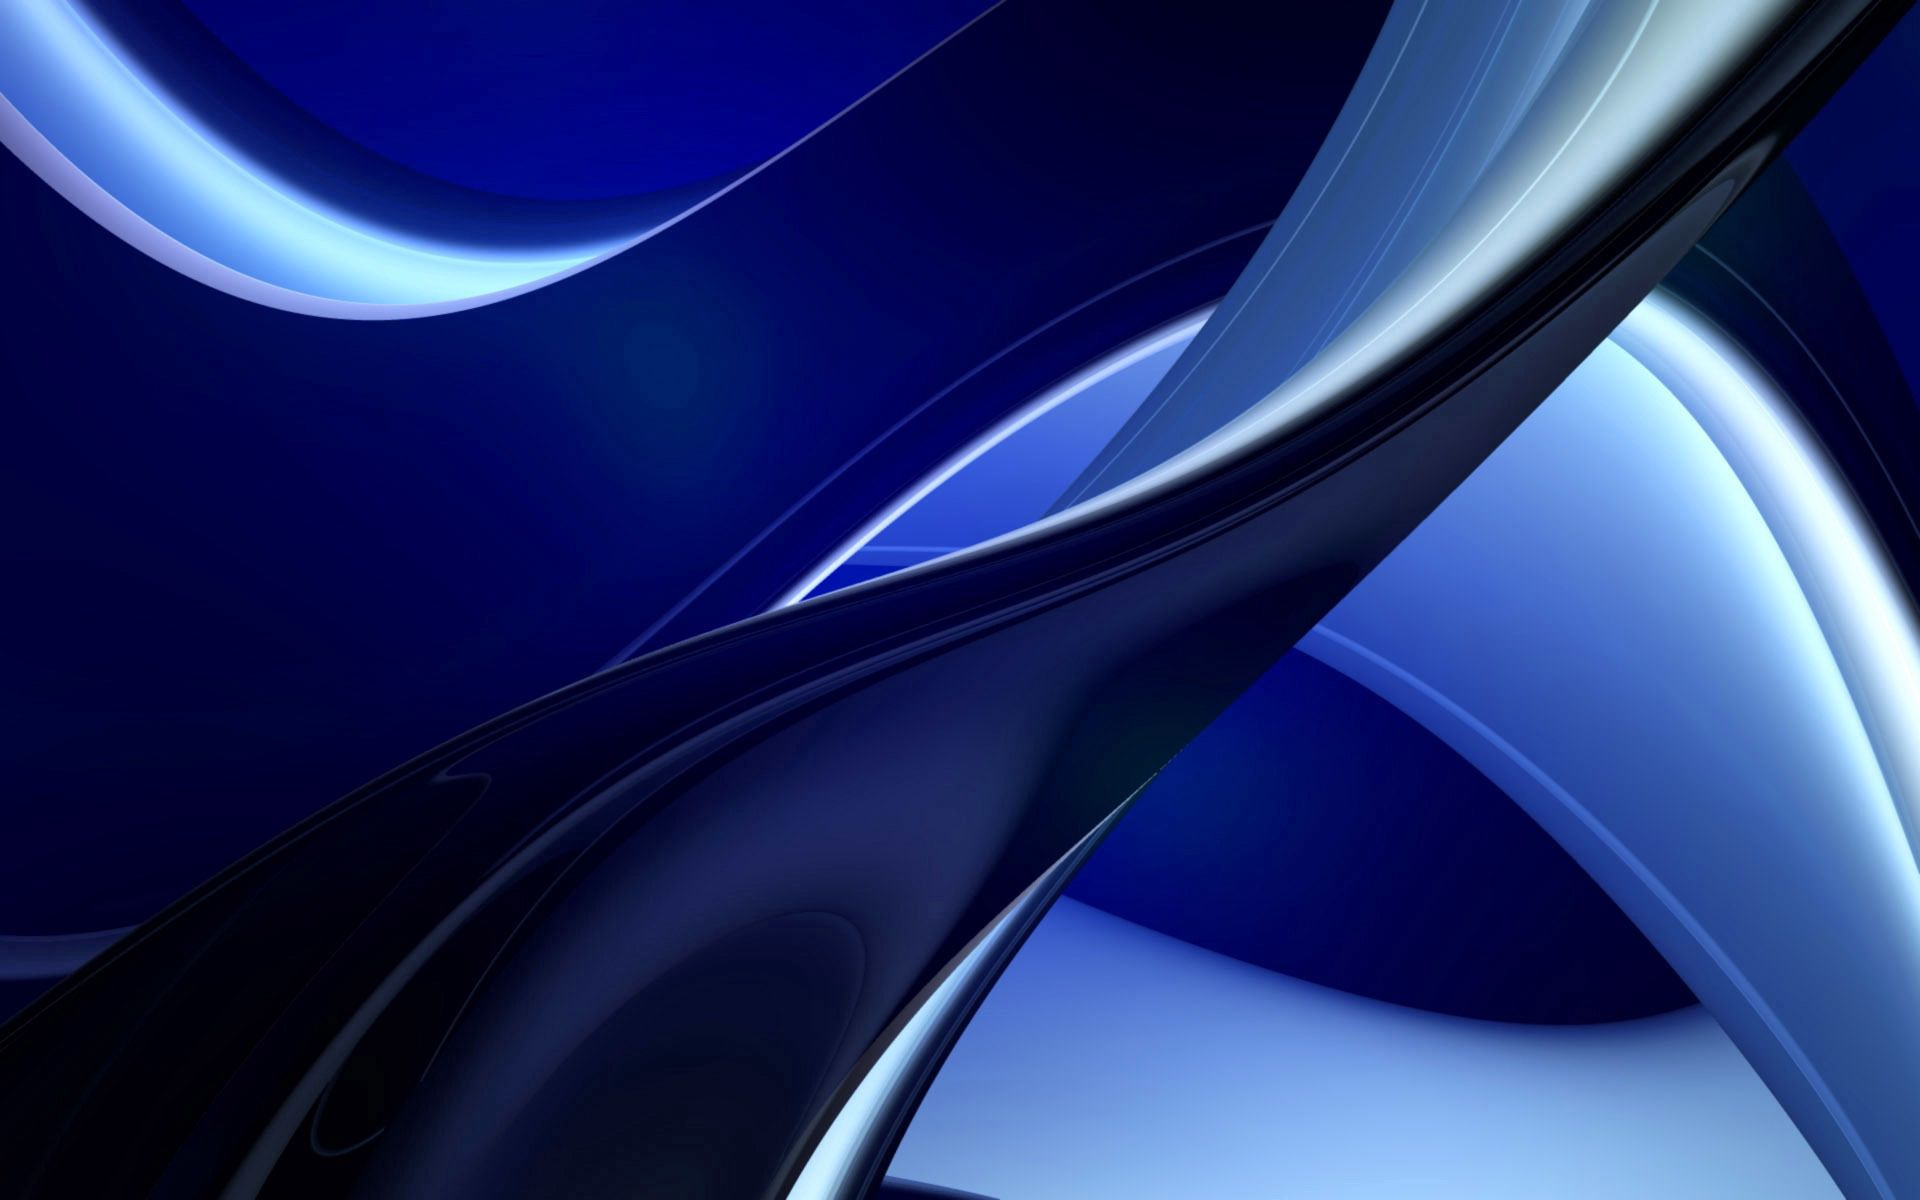 119954 download wallpaper Abstract, Lines, Bend, 3D, Volume, Shine, Light, Fantasy screensavers and pictures for free